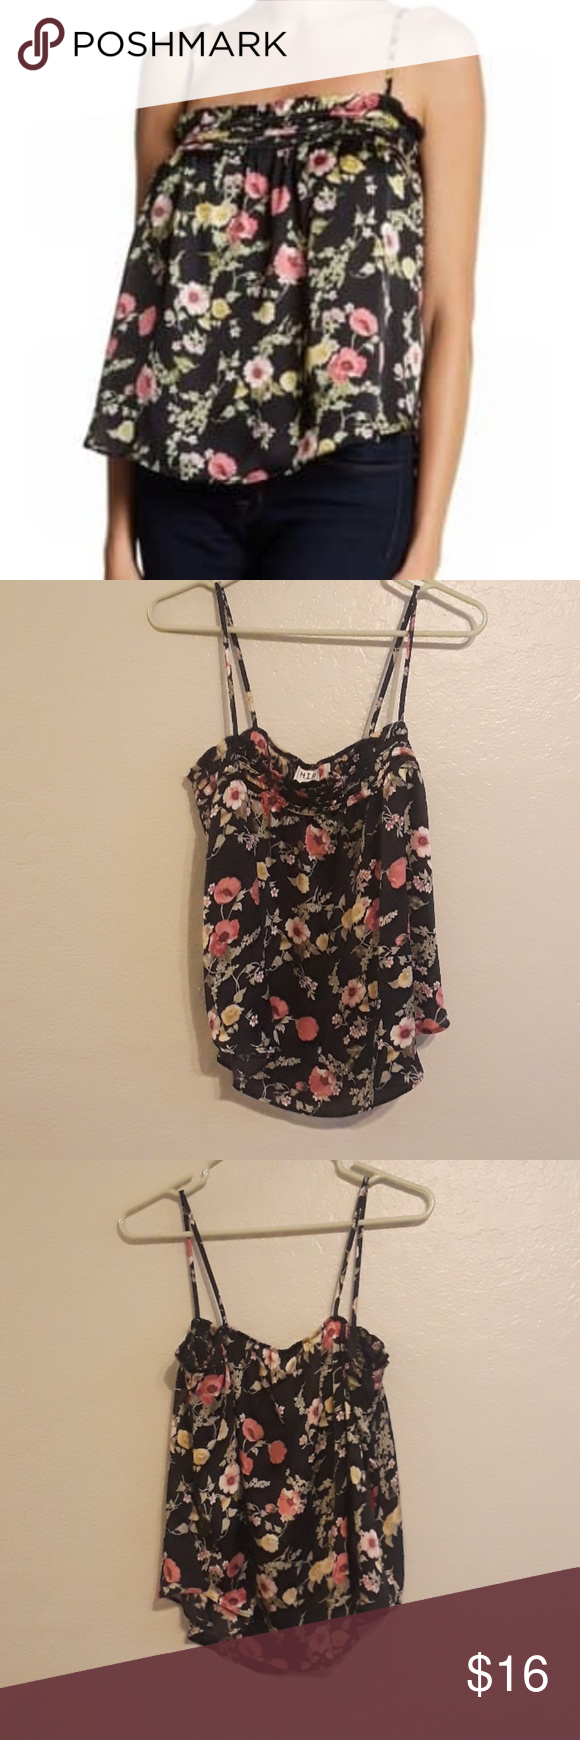 NWT H.I.P black floral top Very cute top for summer